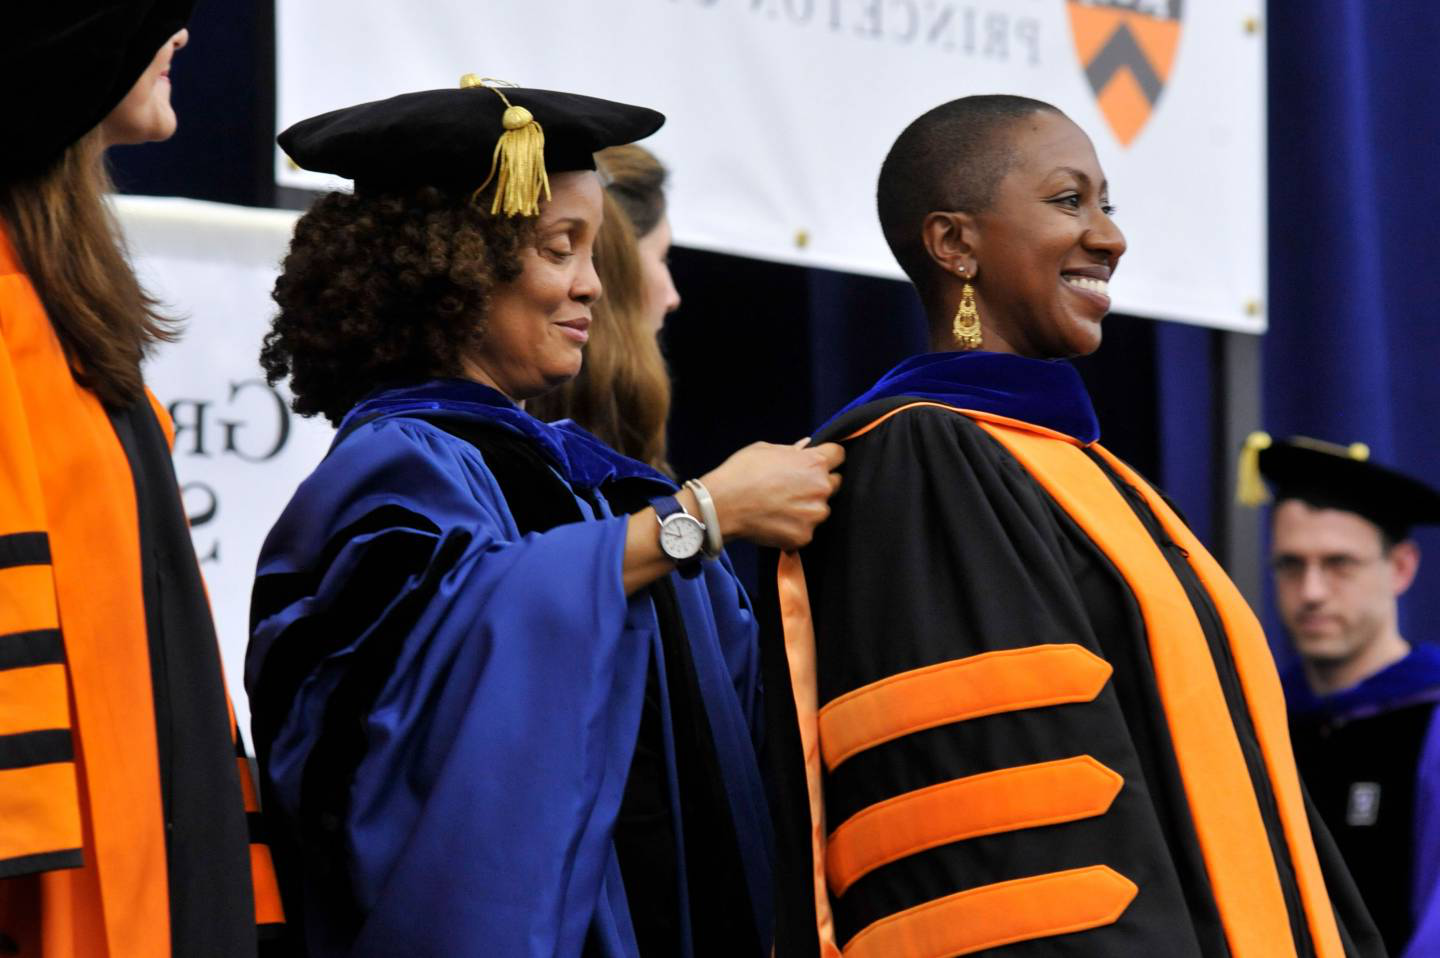 A graduate student is hooded by her adviser